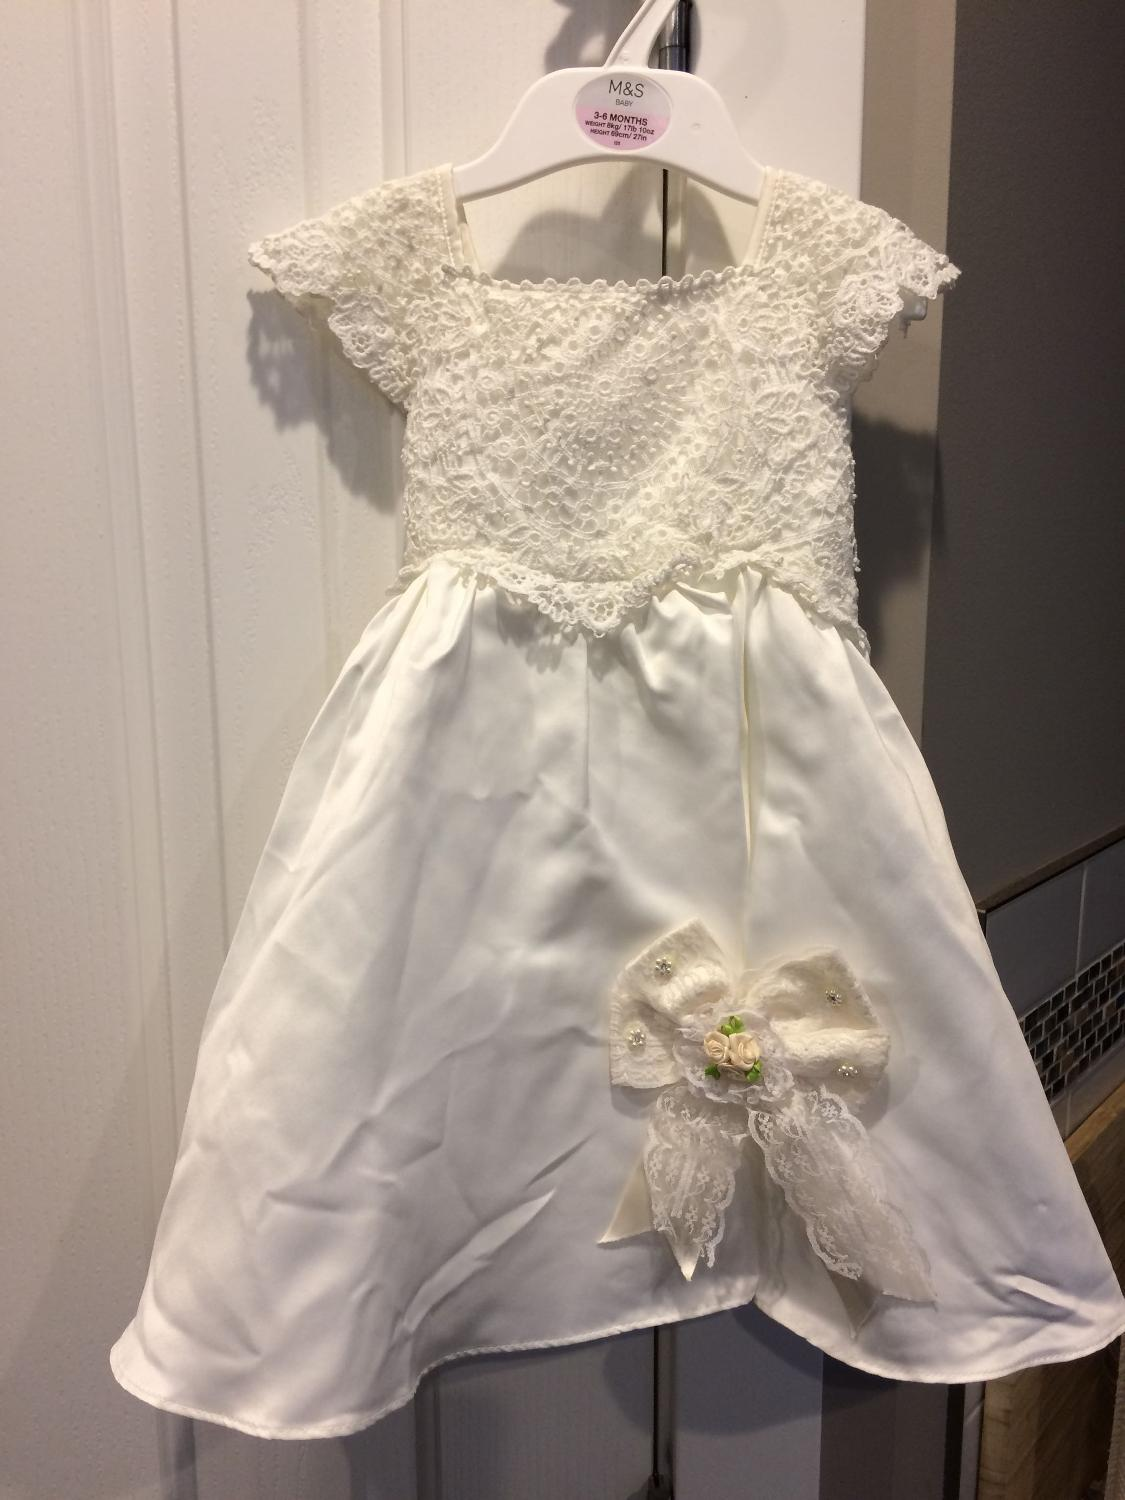 44dee1c65bc Size 6 Month Flower Girl Dresses - Gomes Weine AG